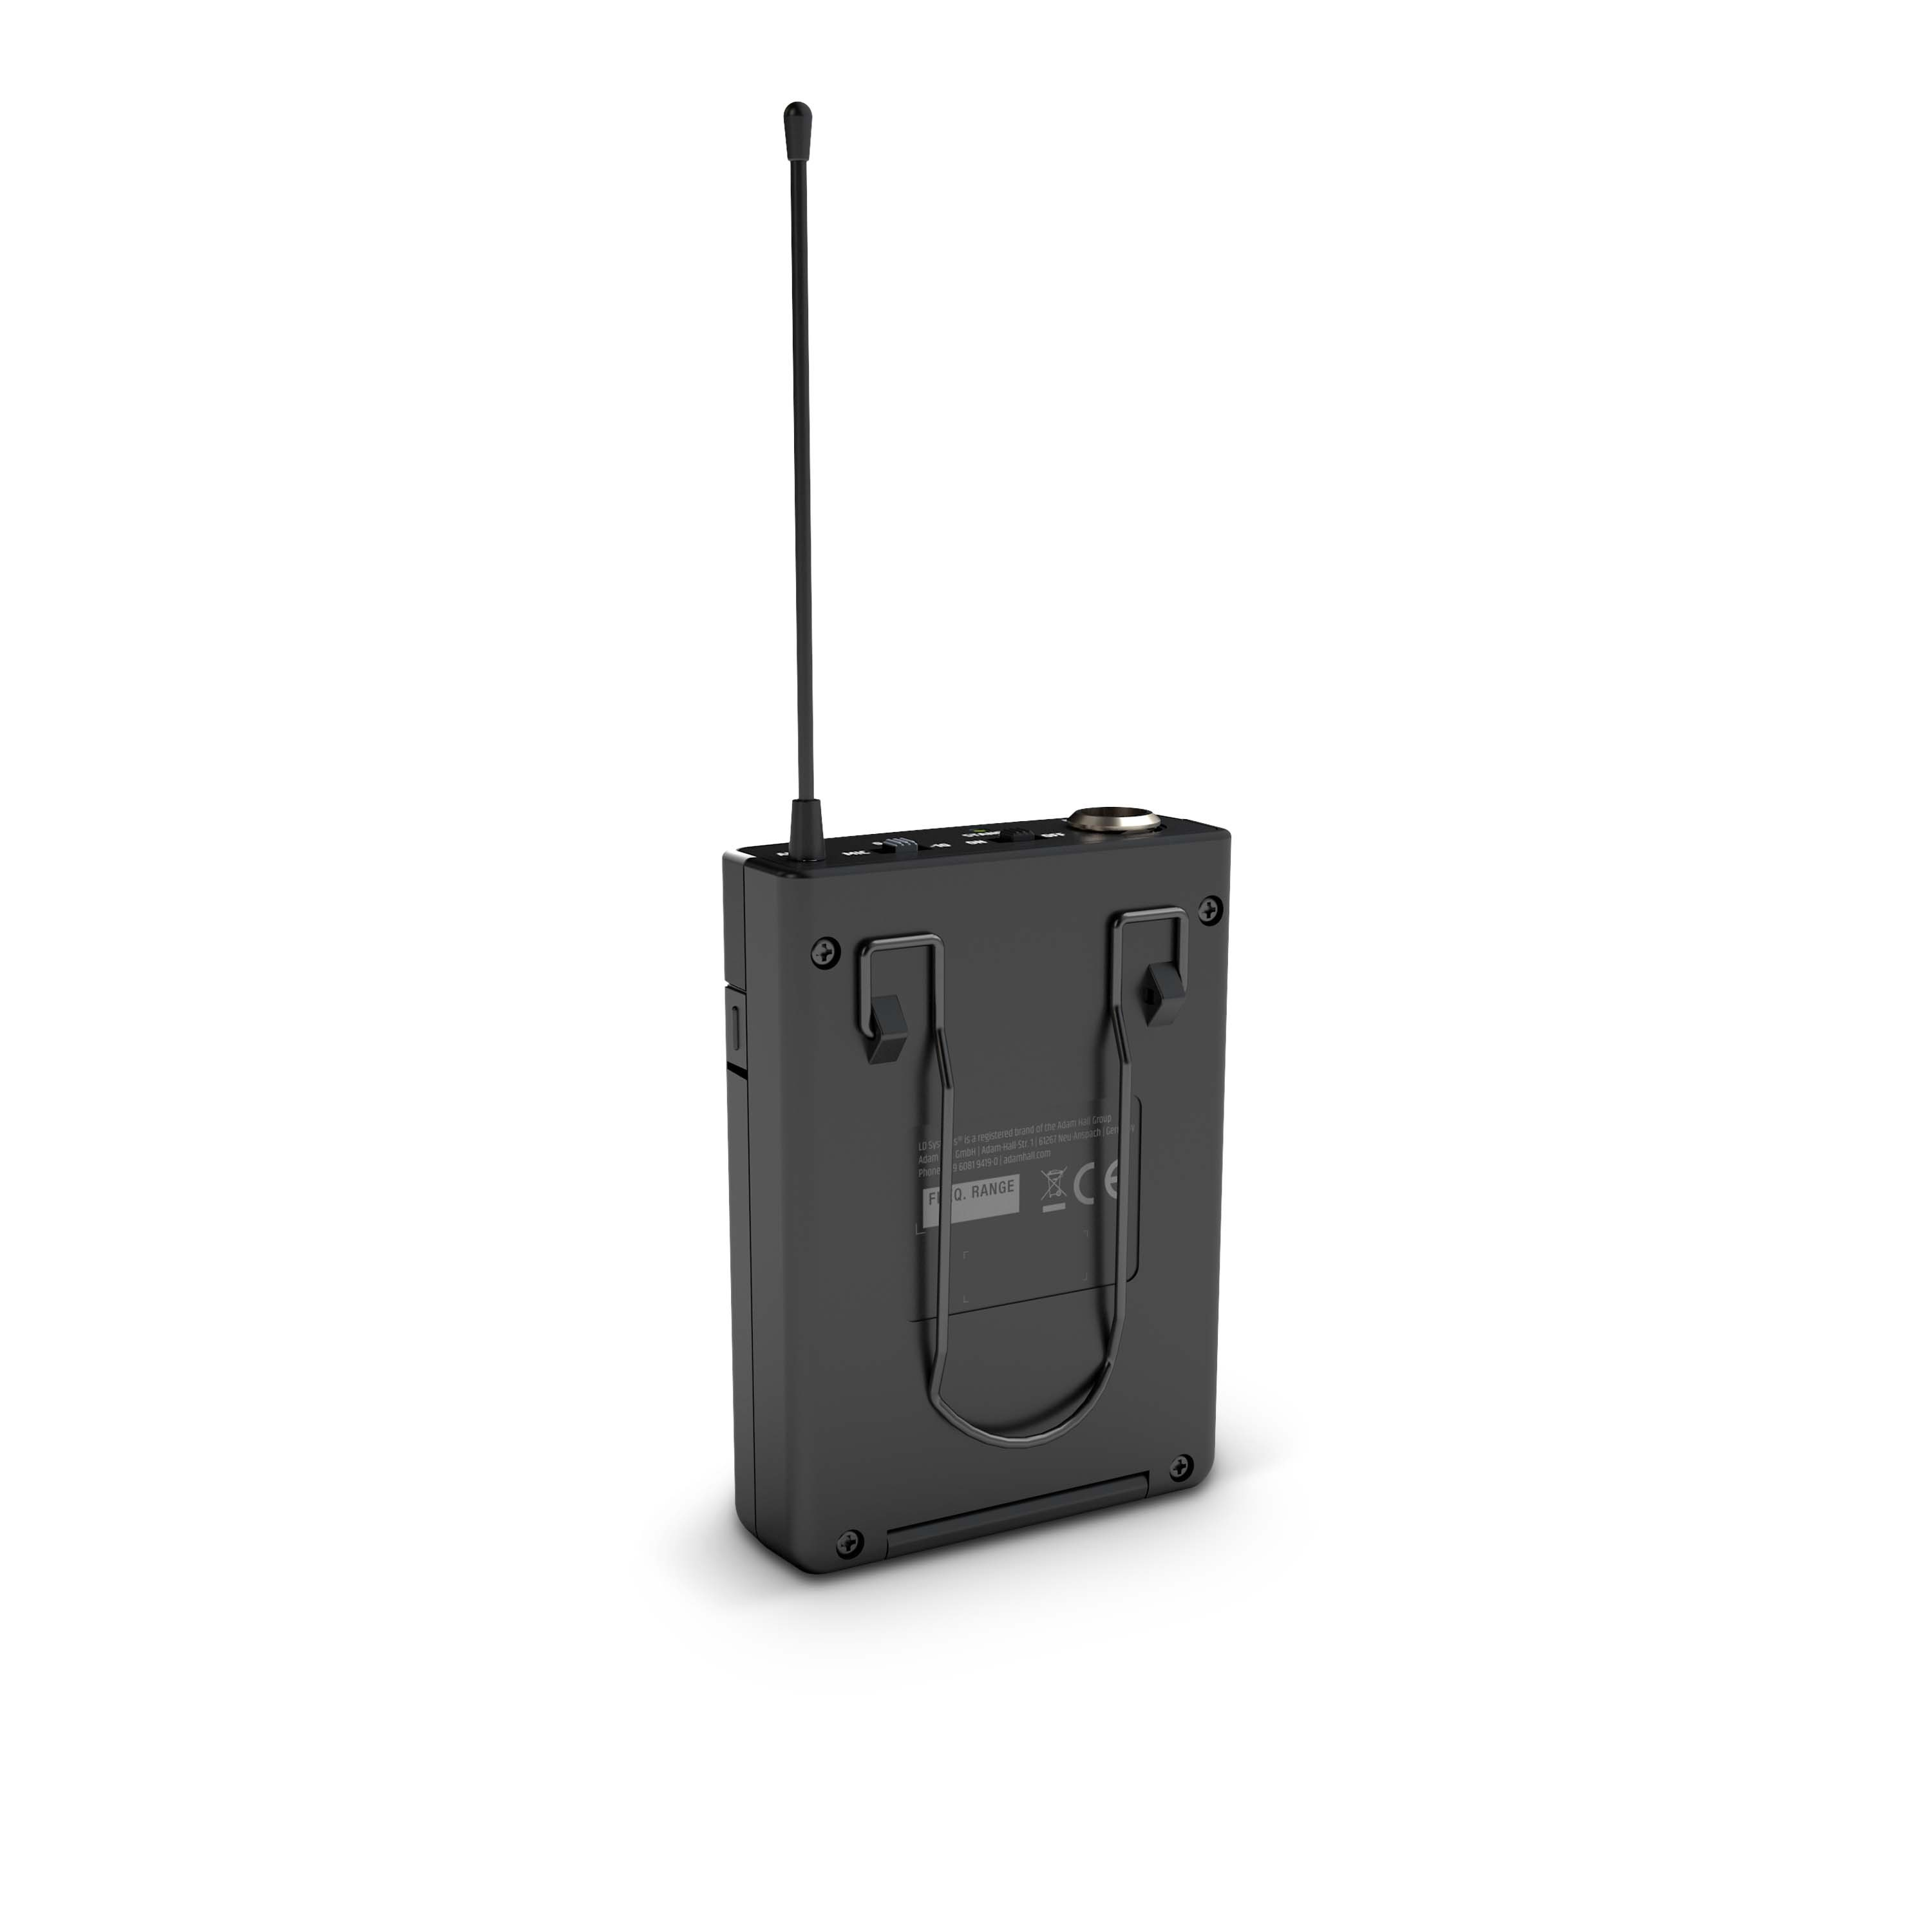 U305.1 BPL Wireless Microphone System with Bodypack and Lavalier Microphone